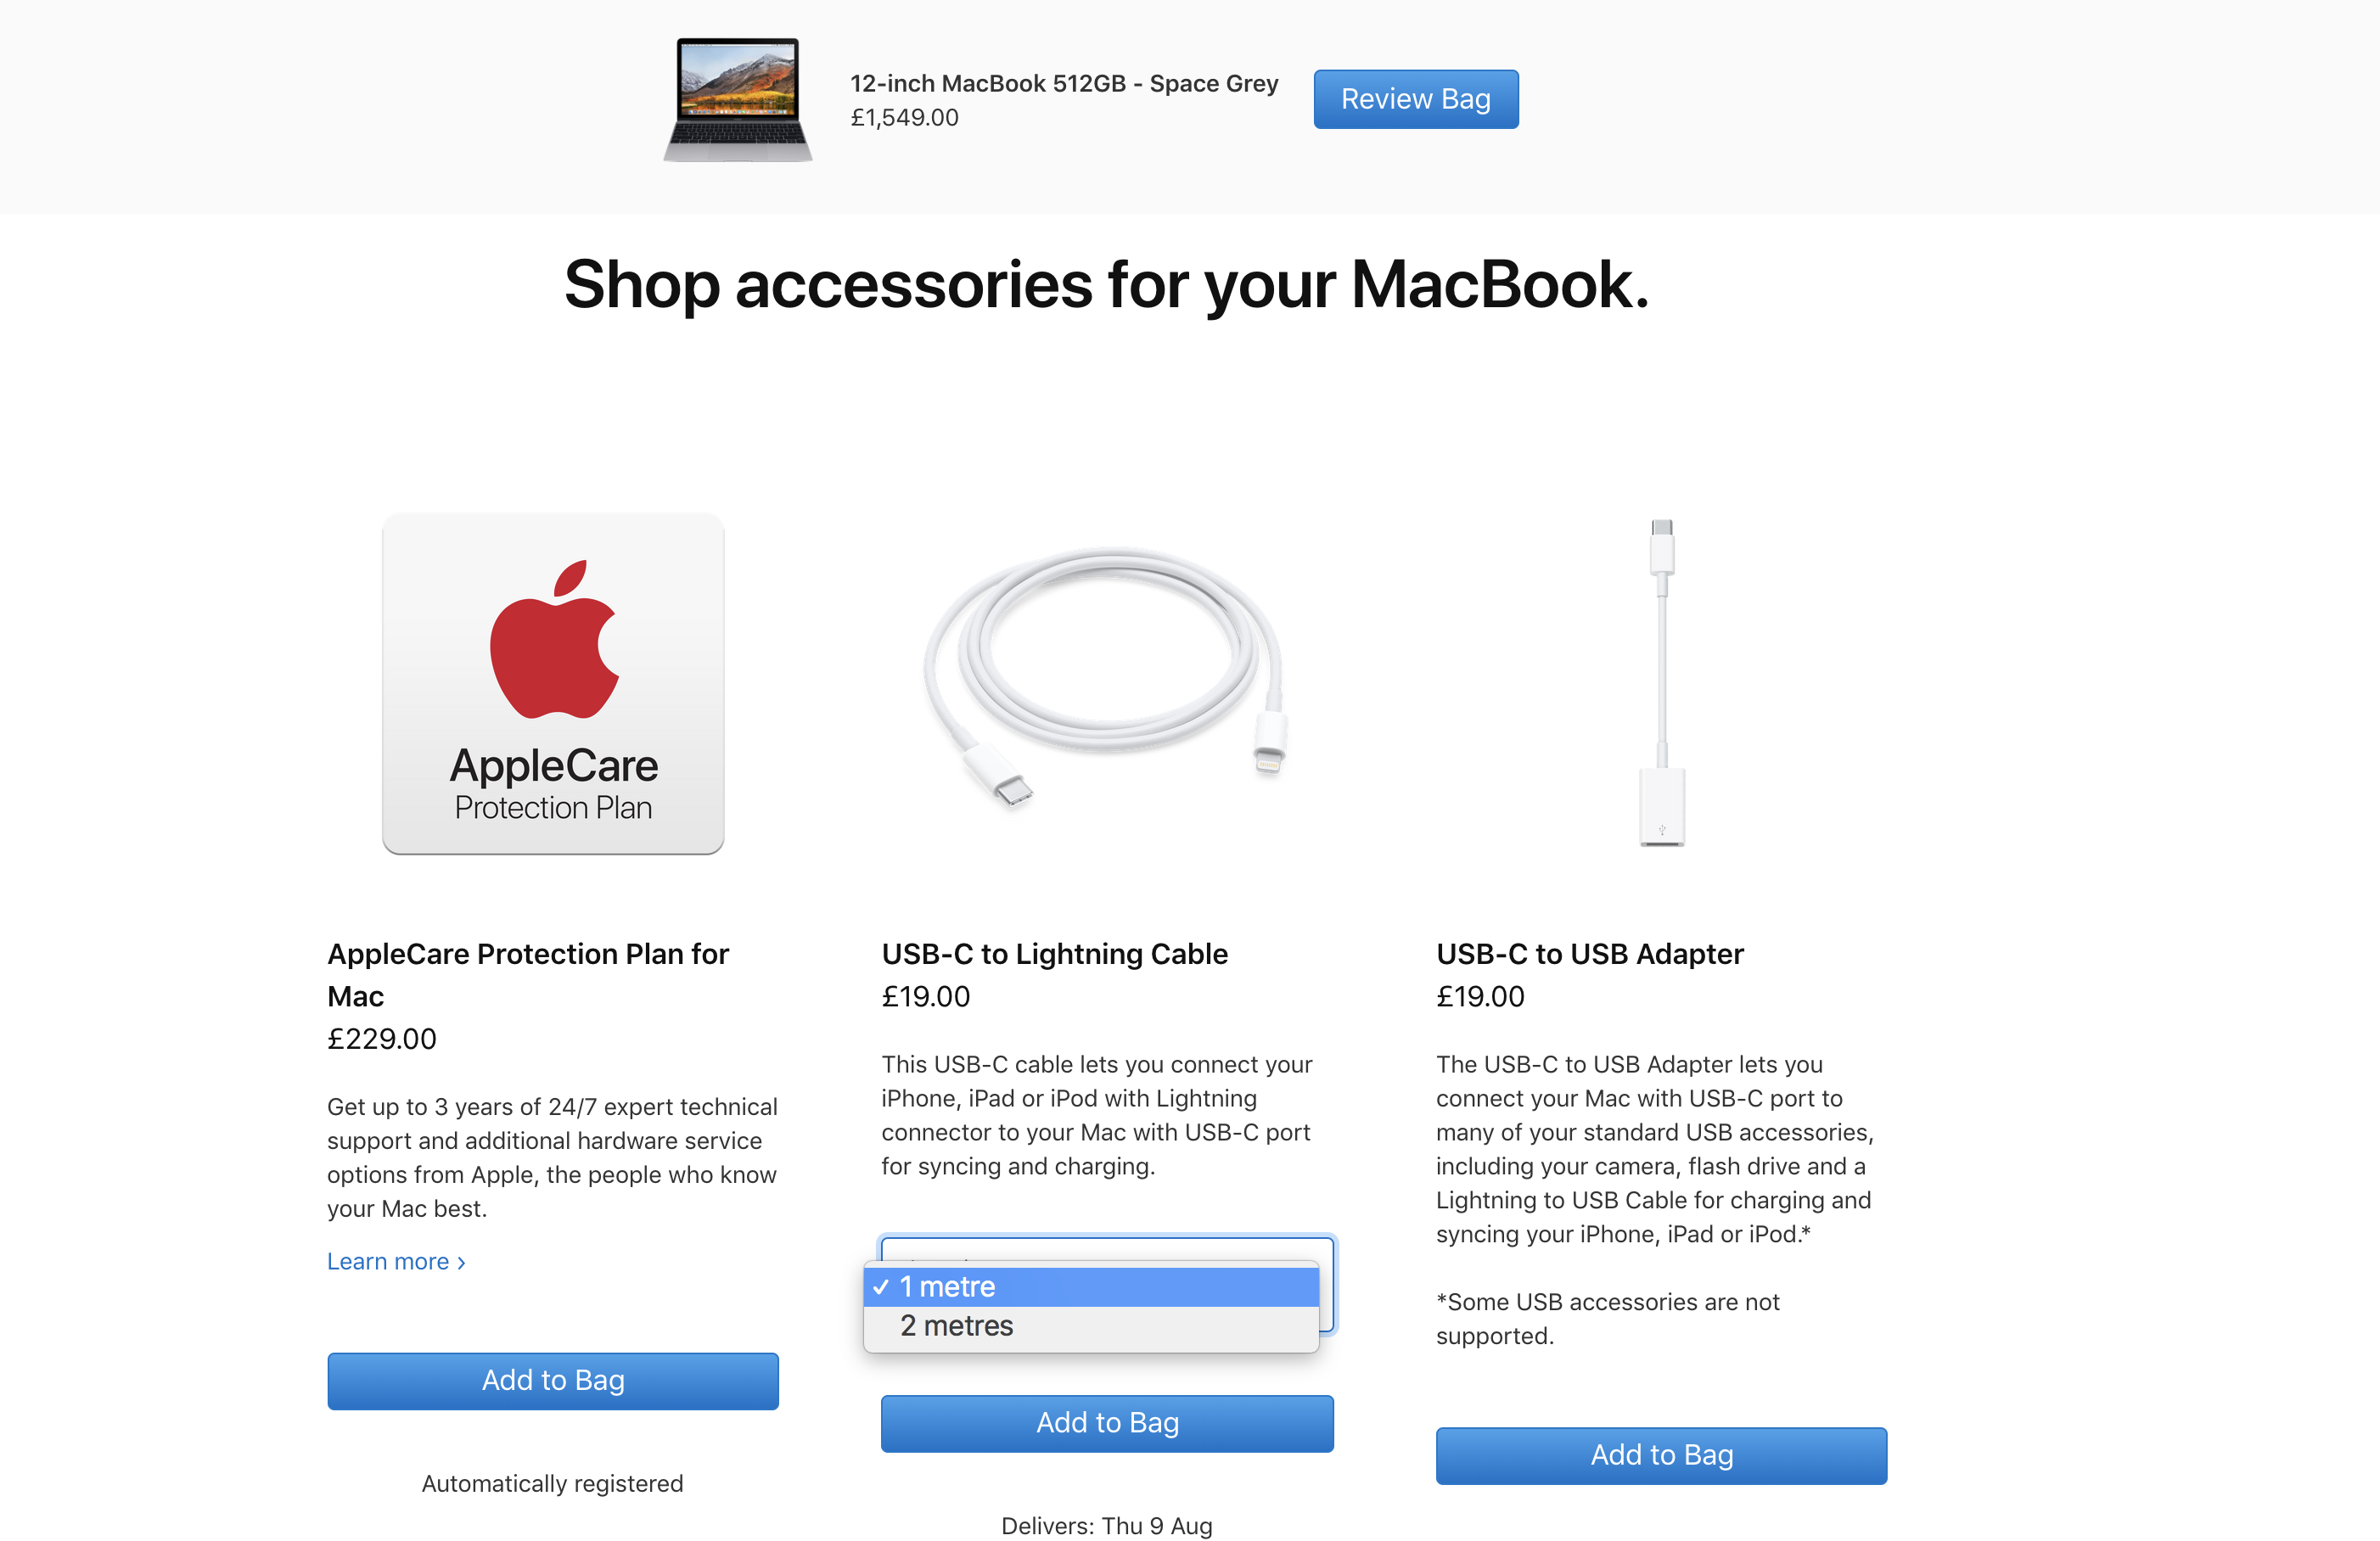 Apple make extensive use of cross-sells. In this example you can see accessory and service cross-selling – plus a cheeky upsell for a longer Lightning Cable!